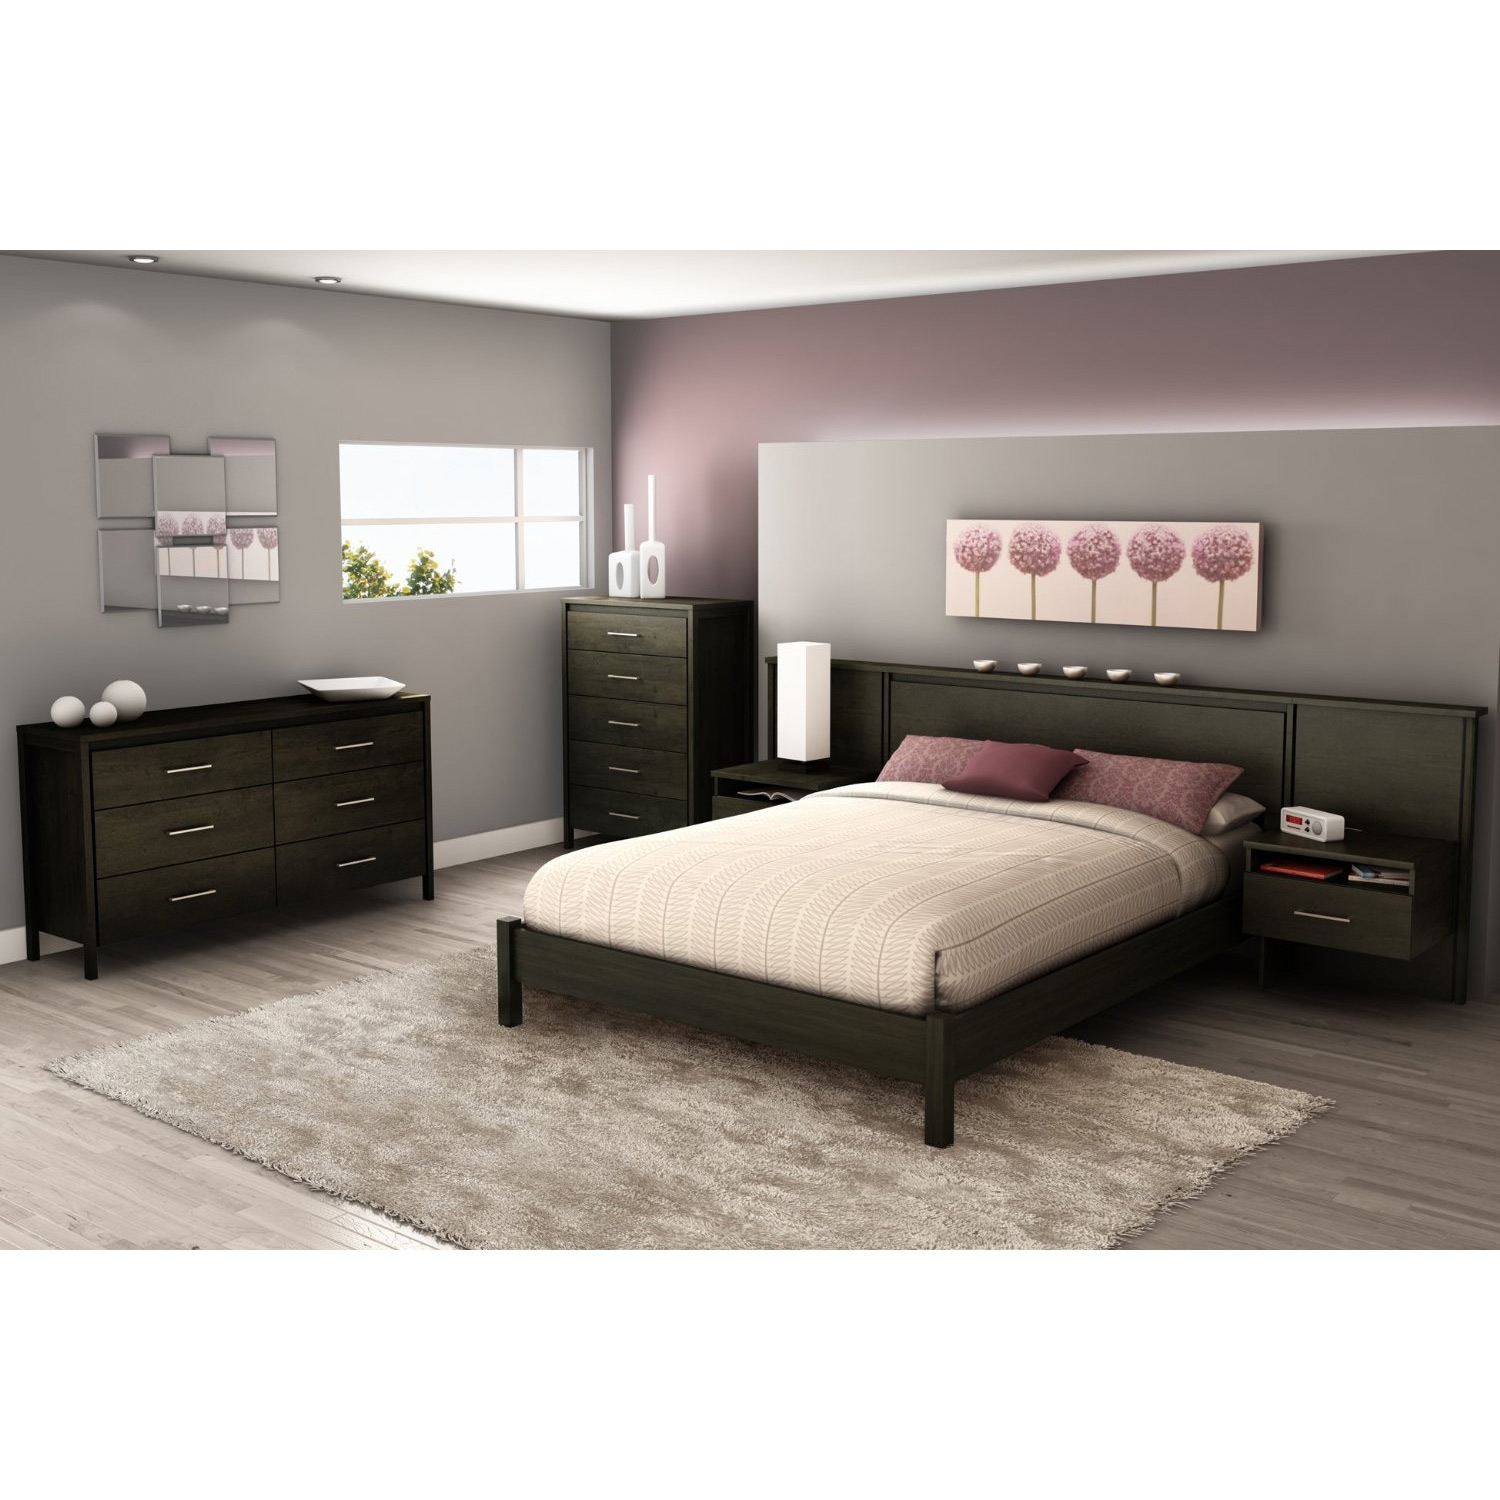 queen size modern platform bed frame in black ebony finish - Black Platform Bed Frame